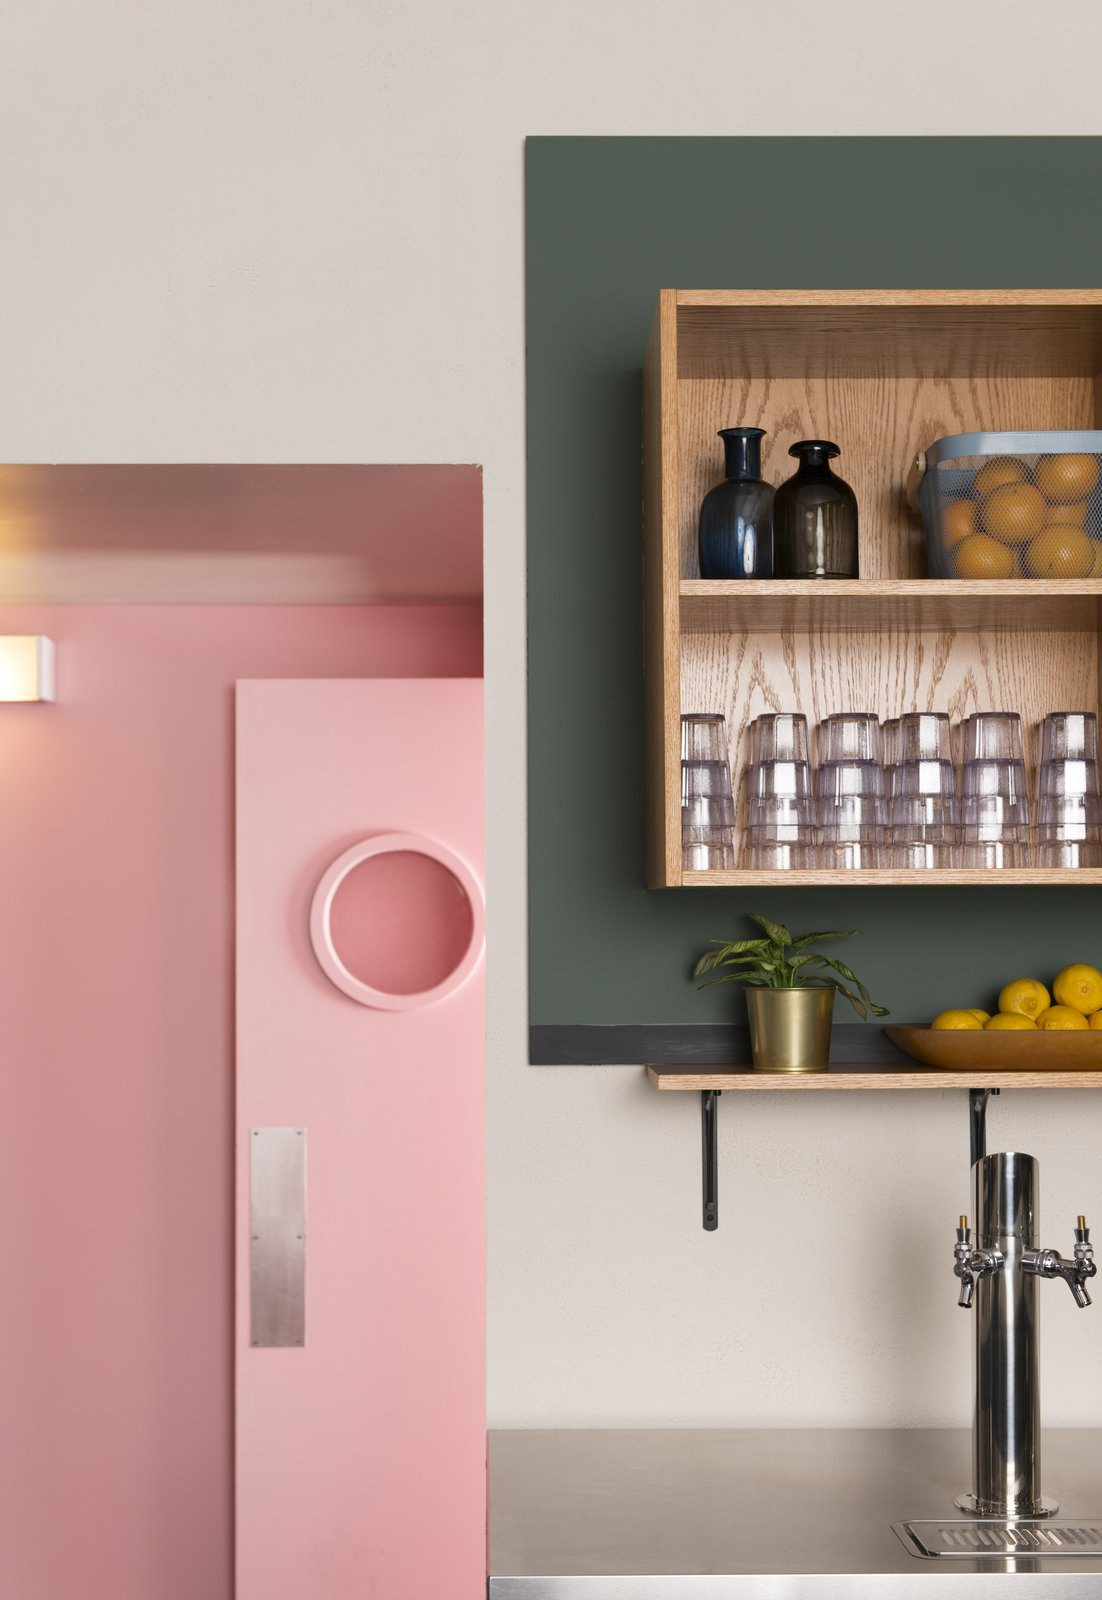 Storage Room and Cabinet Storage Type  Photo 1 of 14 in Fun, Cheeky Interiors Give This Middle Eastern Eatery a Modern Edge